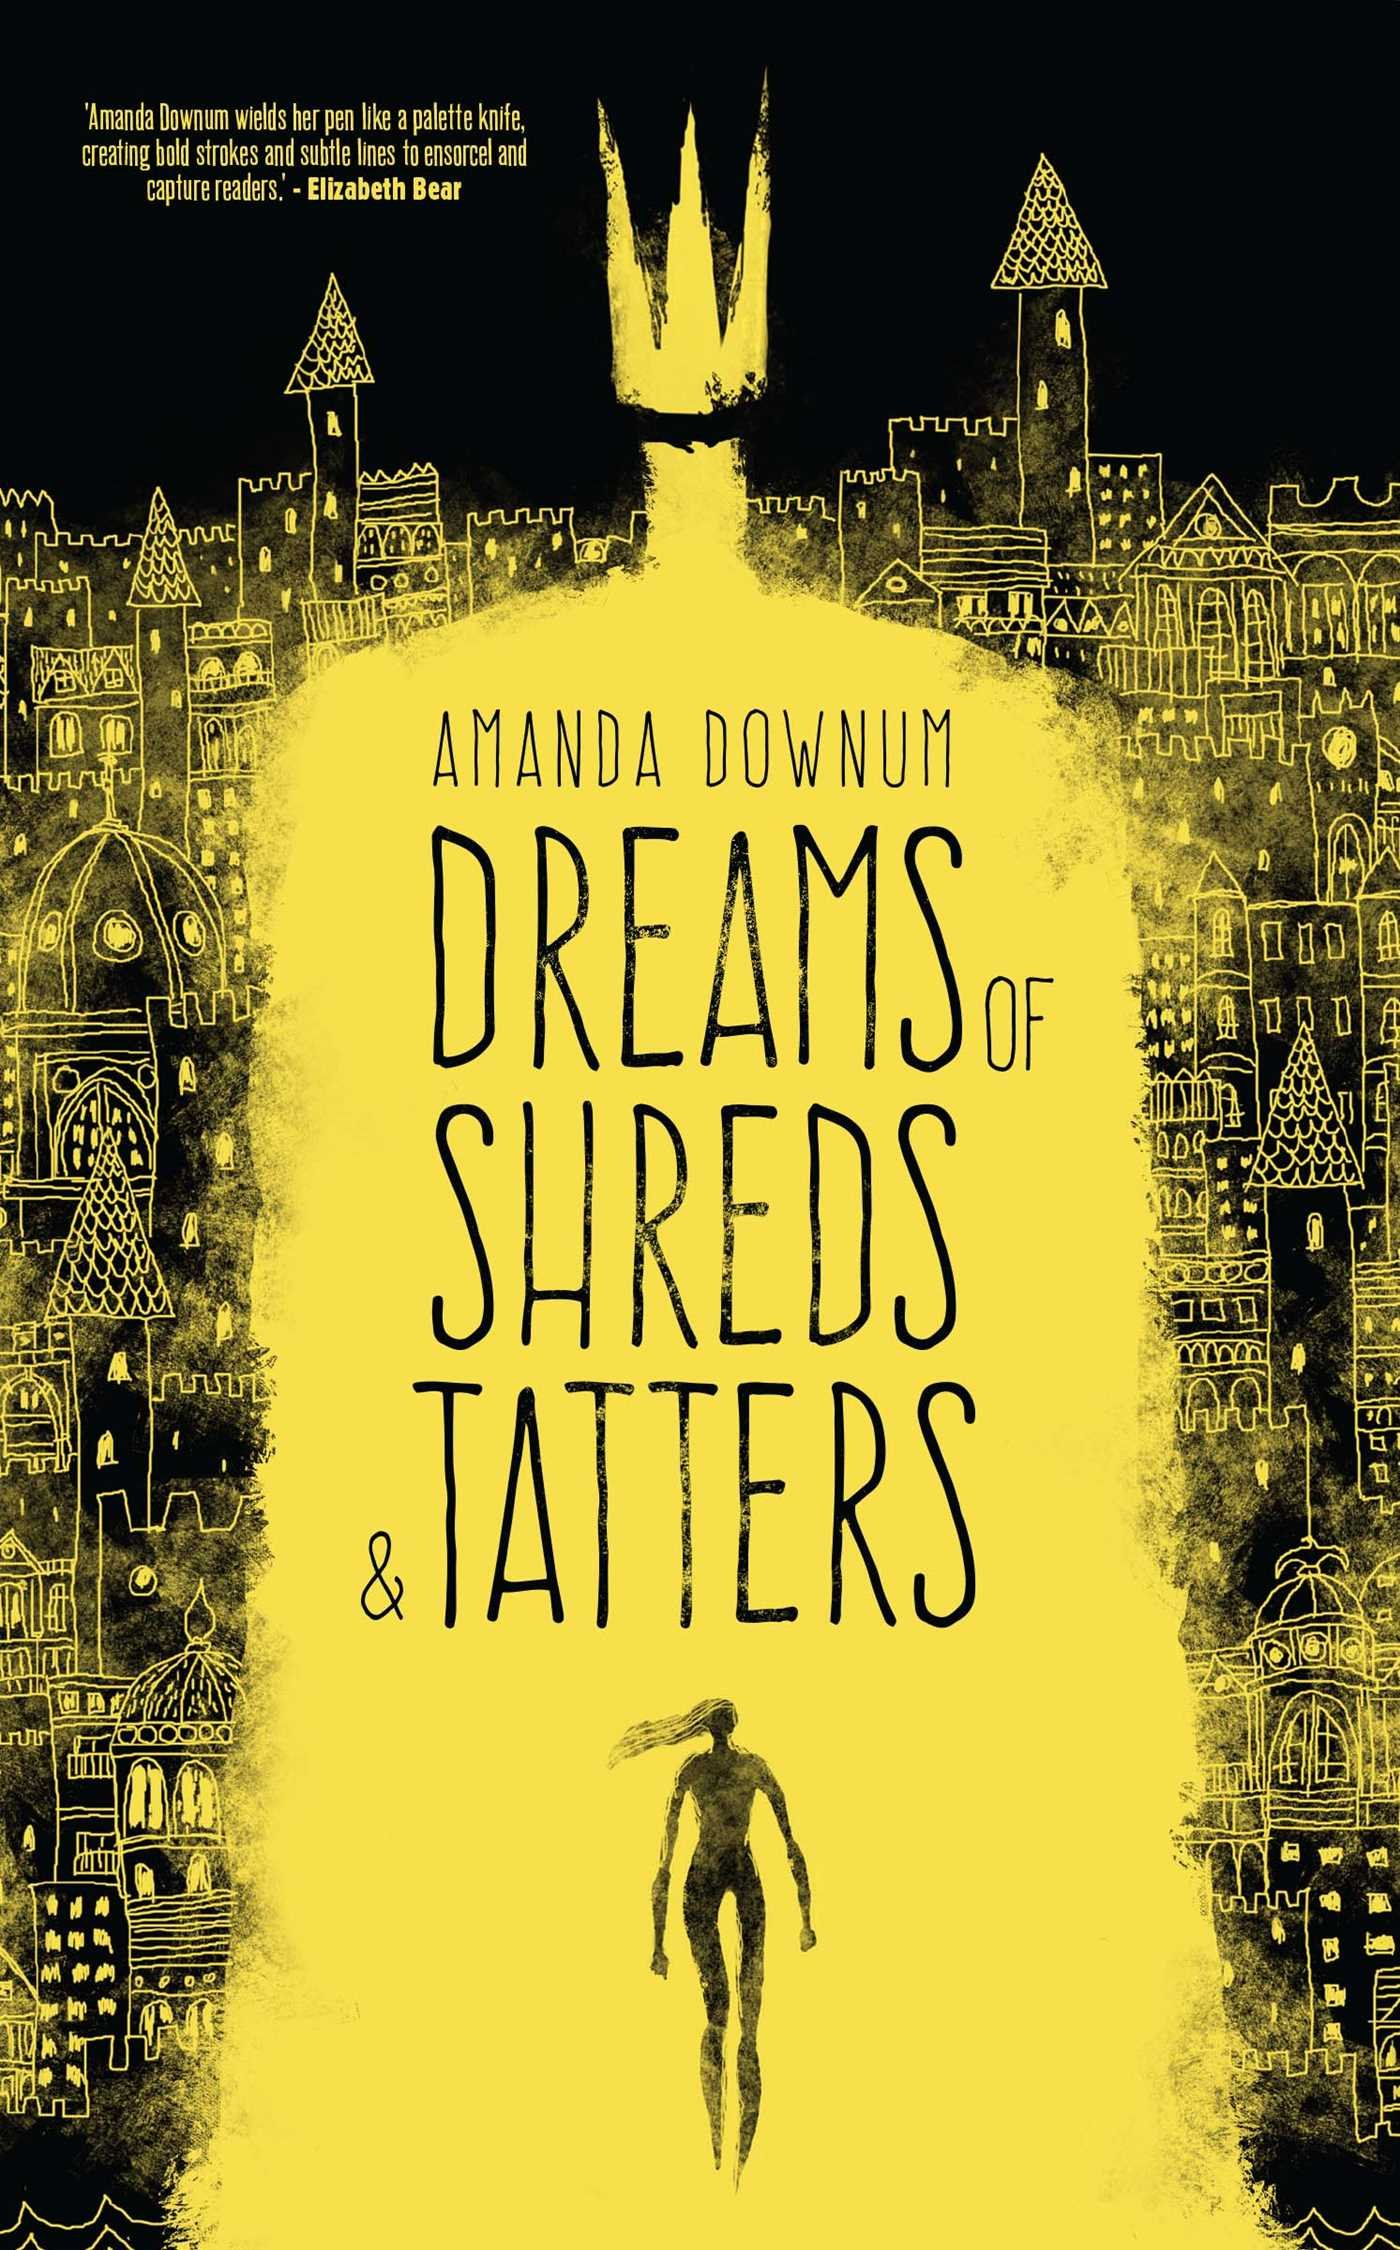 Dreams of Shreds and Tatters by Amanda Downum